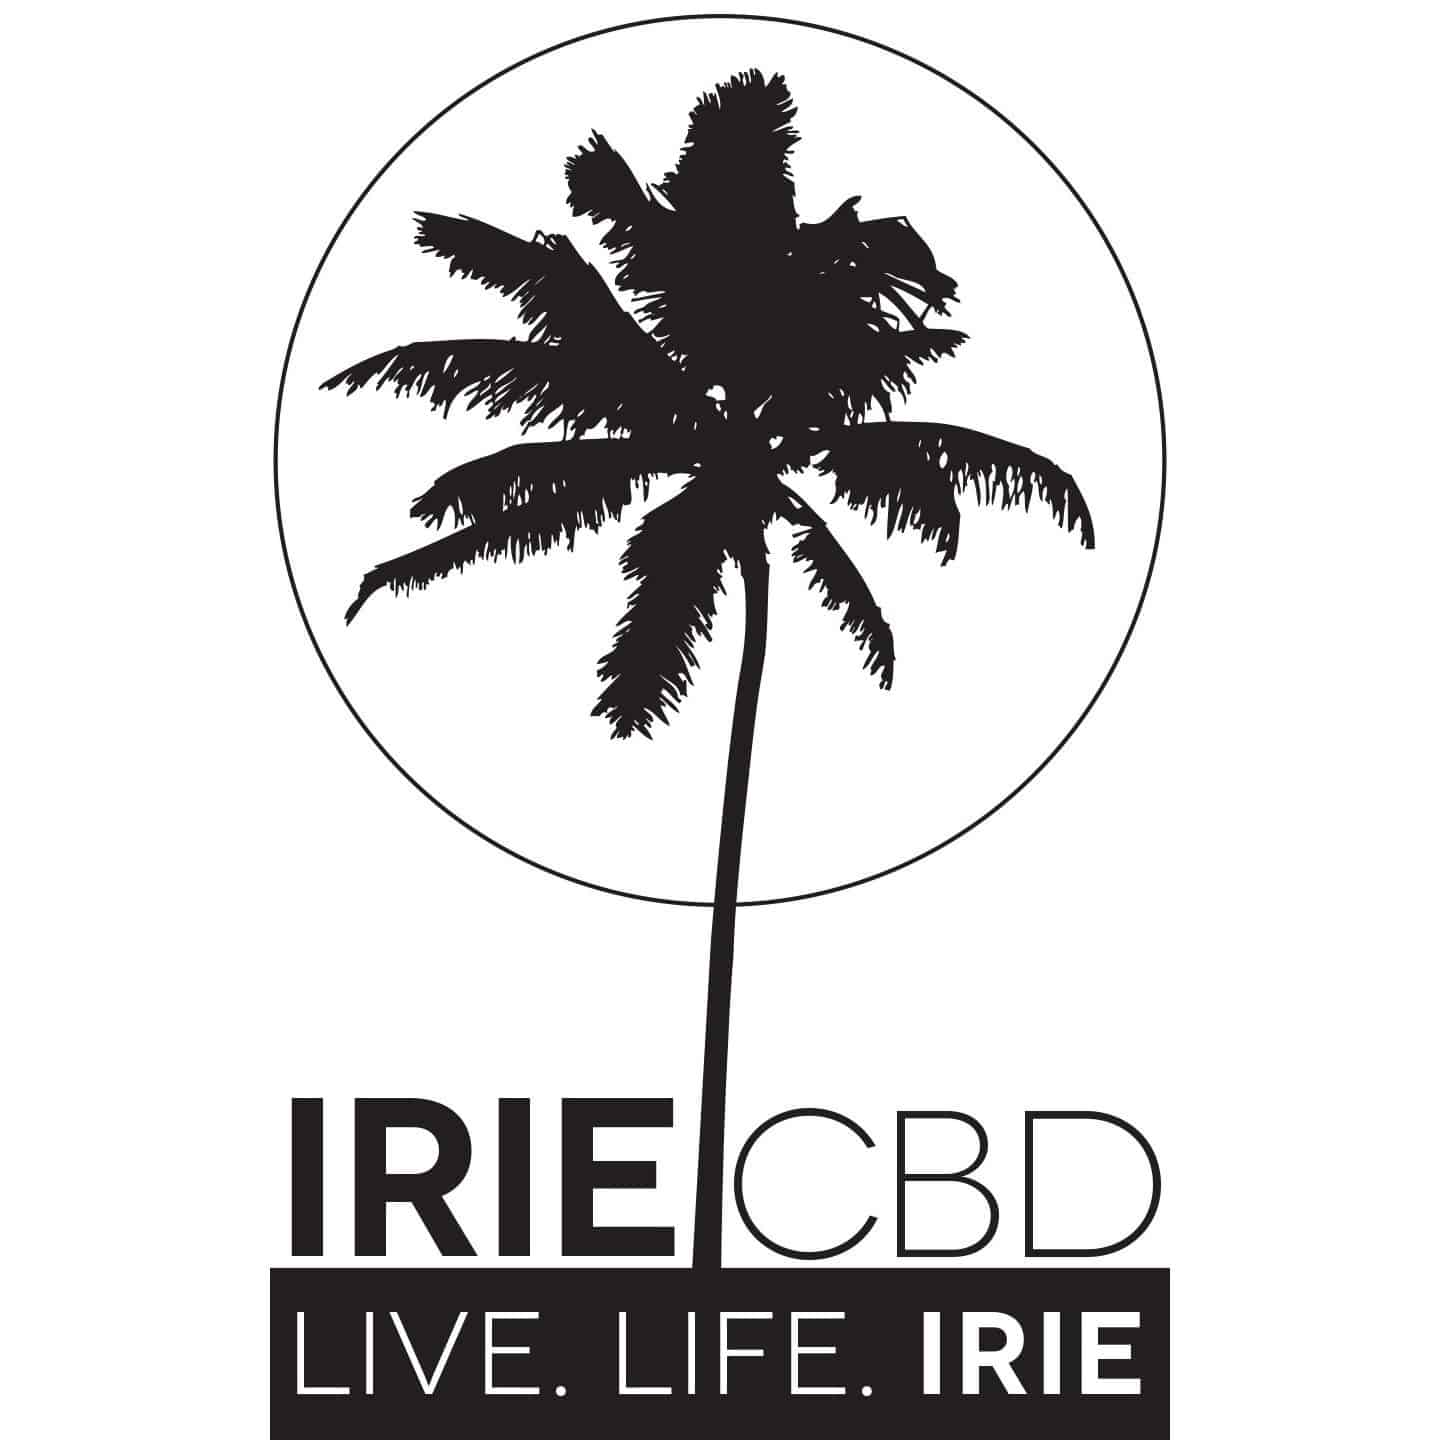 Irie CBD Coupon Codes - Save On Cannabis - Cannabis Coupon Codes - Hemp - Marijuana Online